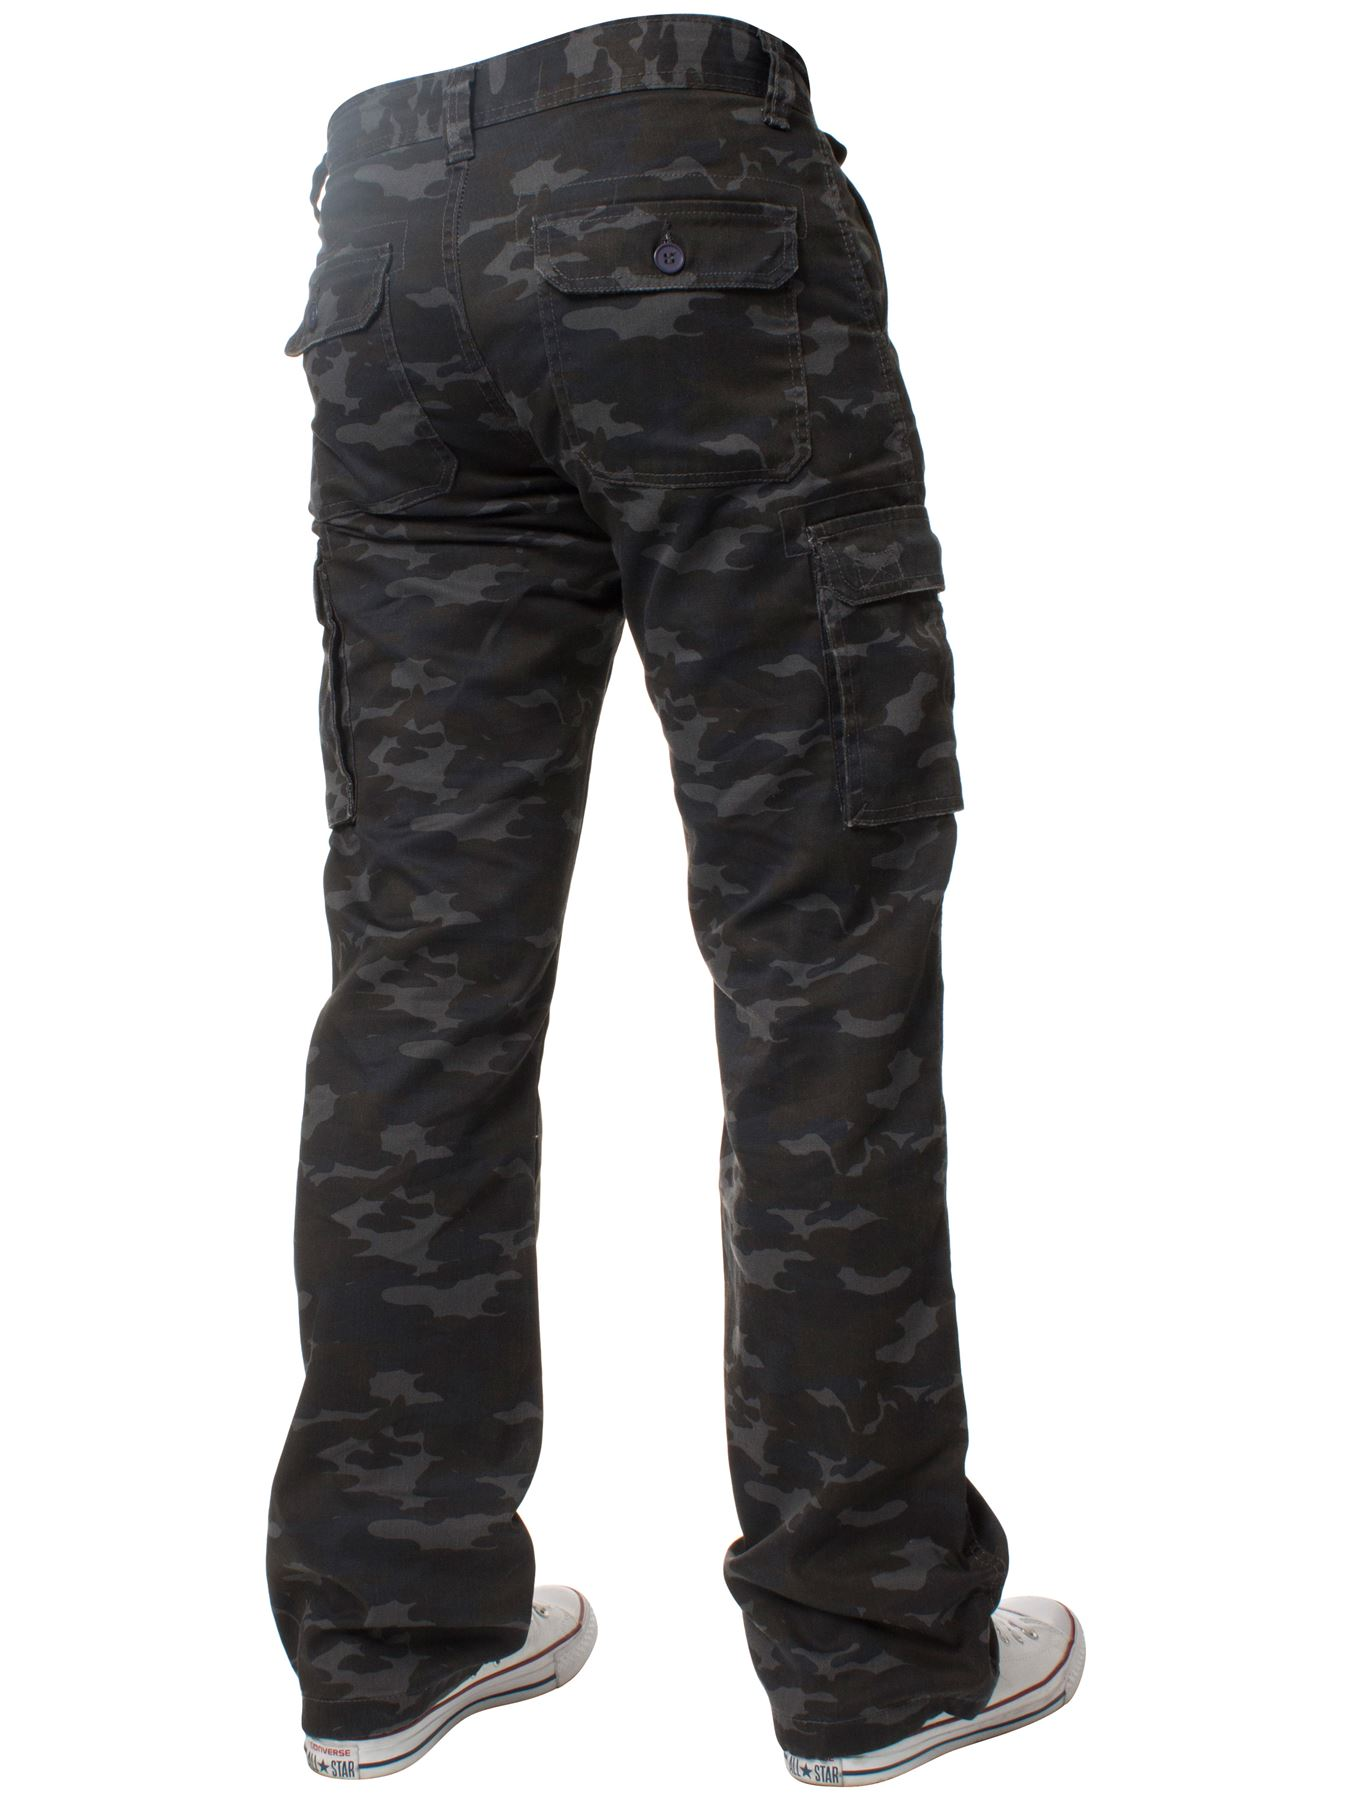 Kruze-Mens-Military-Combat-Trousers-Camouflage-Cargo-Camo-Army-Casual-Work-Pants miniatura 32